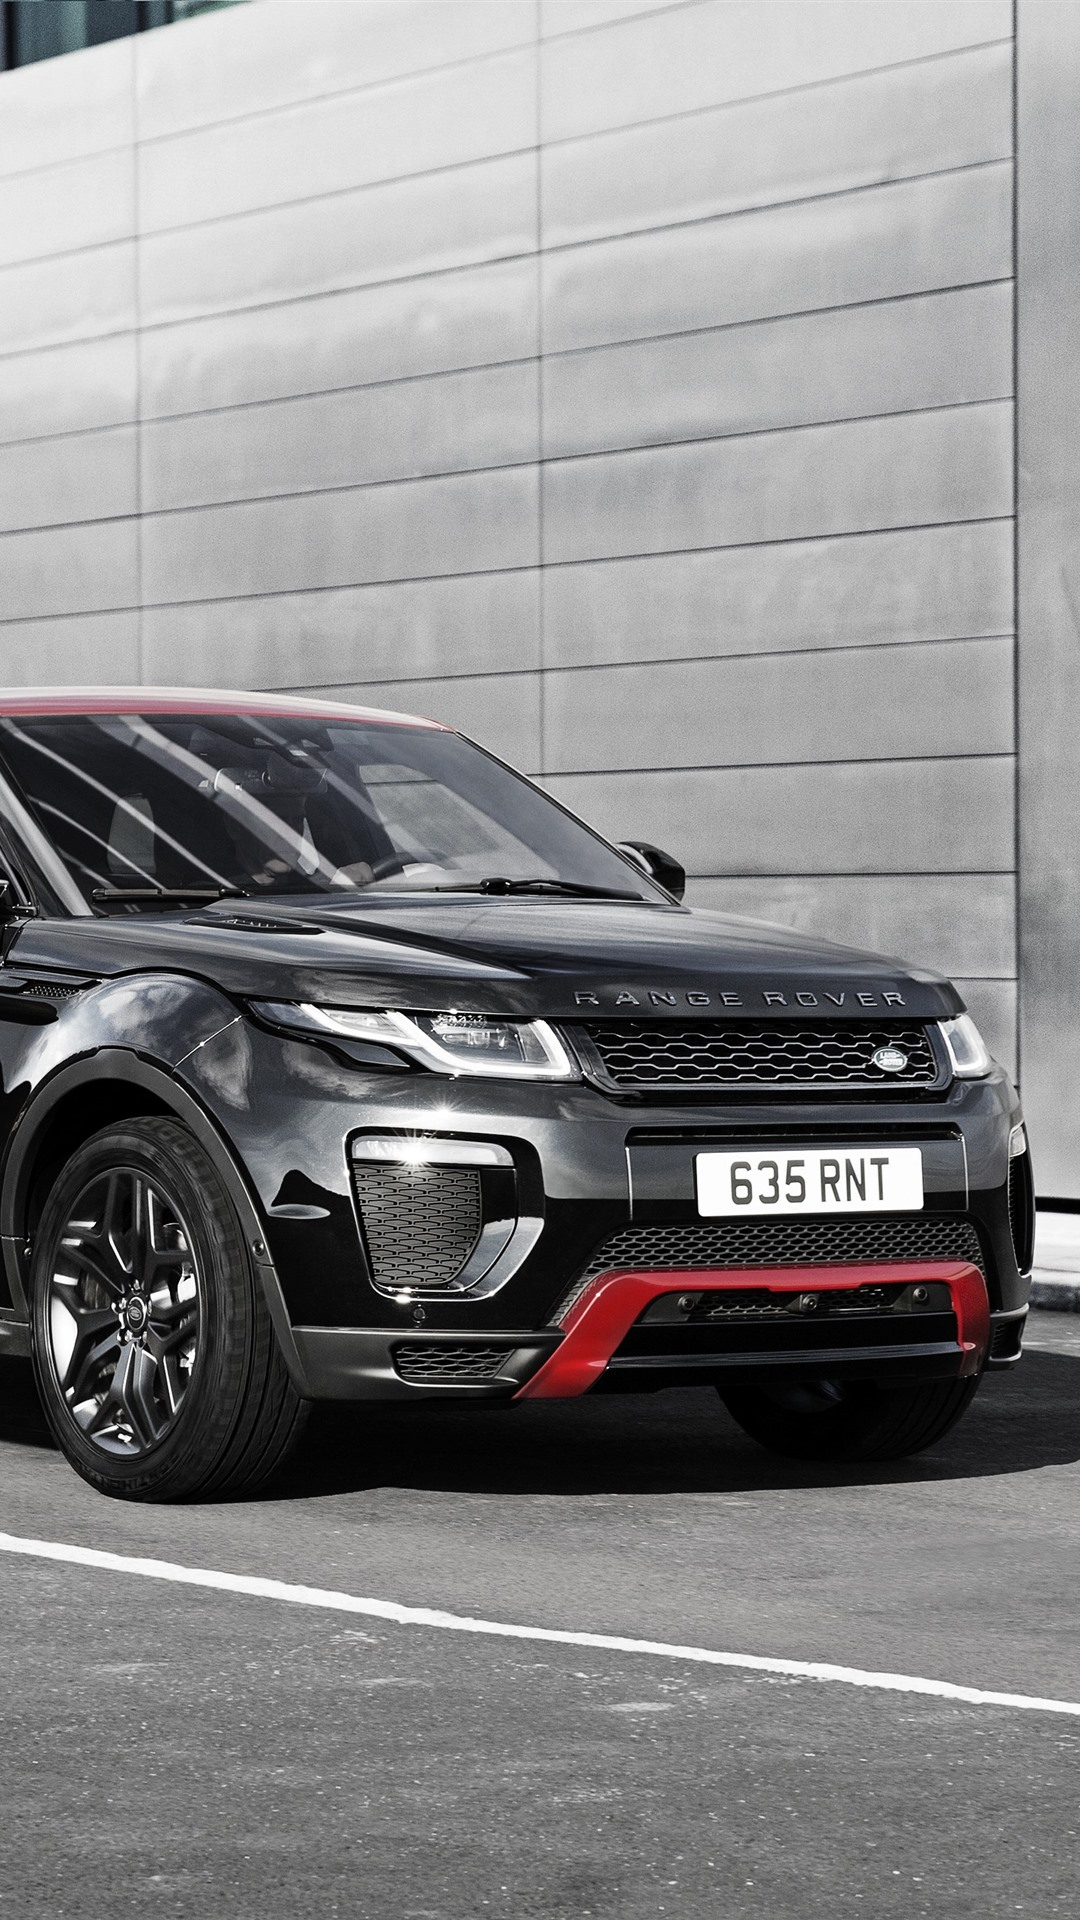 Land Rover Range Rover Black Suv Car 1242x2688 Iphone 11 Pro Xs Max Wallpaper Background Picture Image